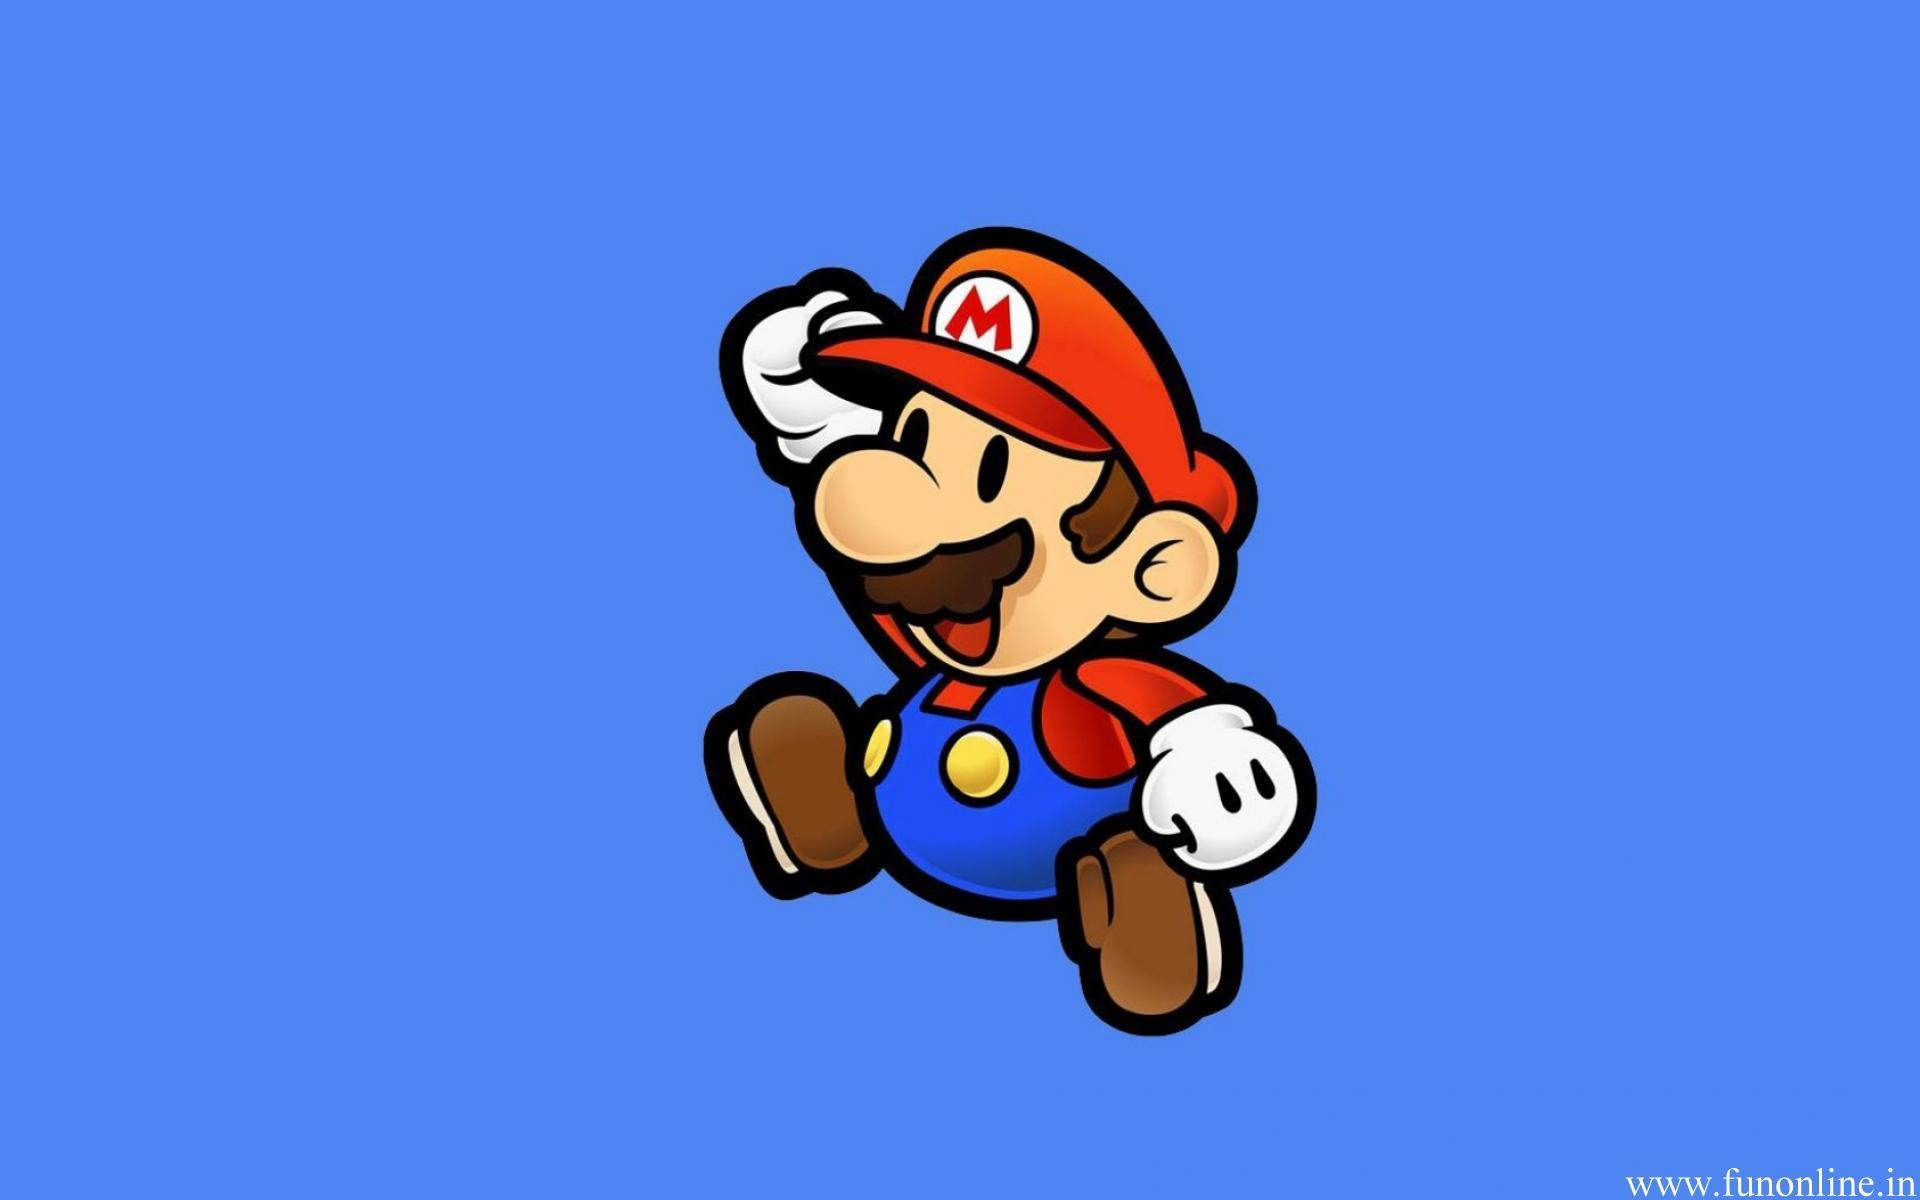 Mario Wallpapers - Full HD wallpaper search - page 7